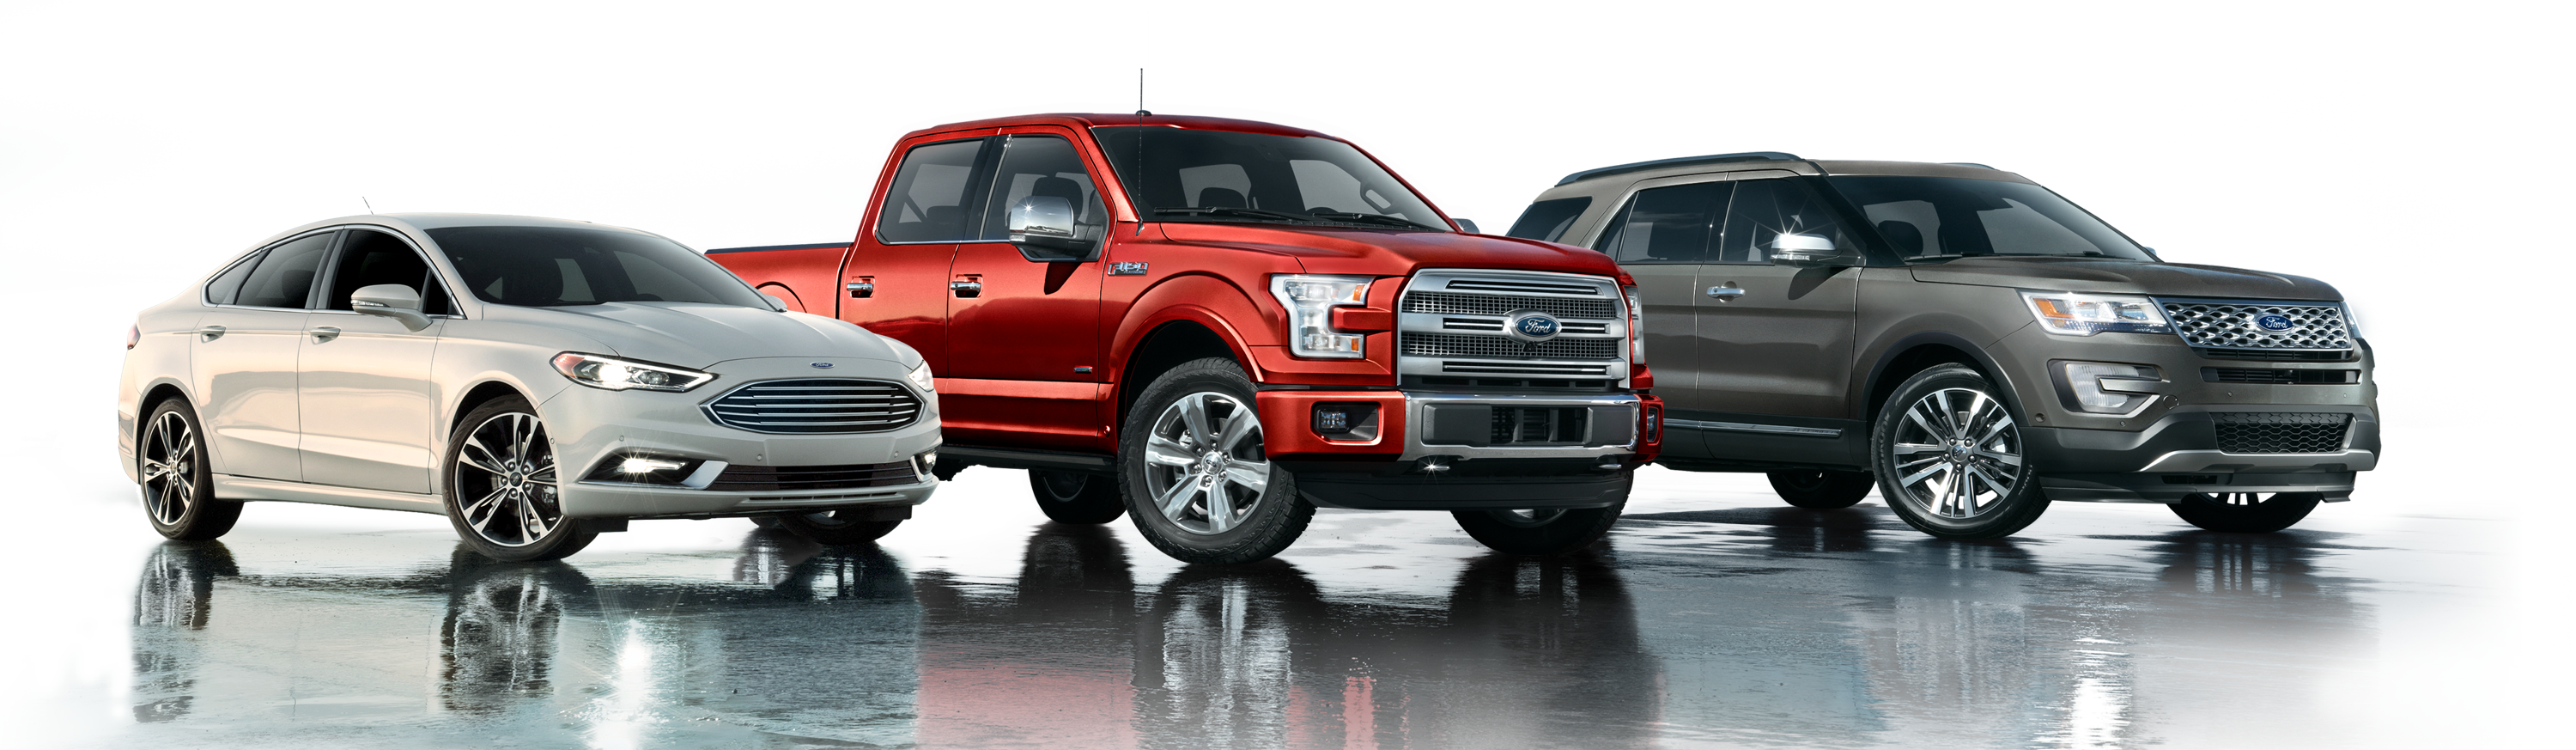 New Ford Lineup In Nashua Best Ford Lincoln Serving Litchfield - Best ford car to buy